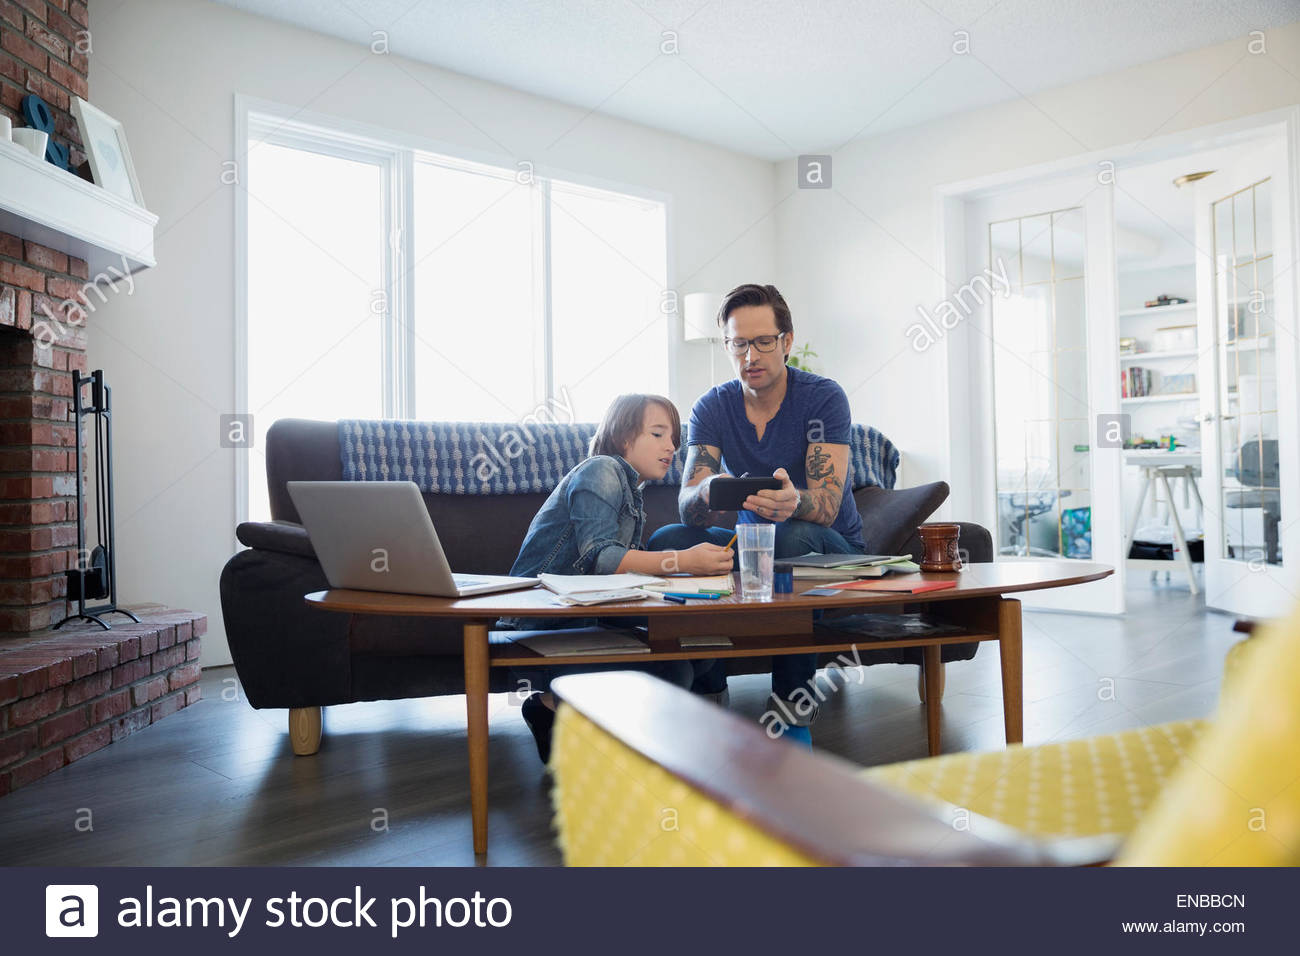 Father helping son with homework in living room - Stock Image